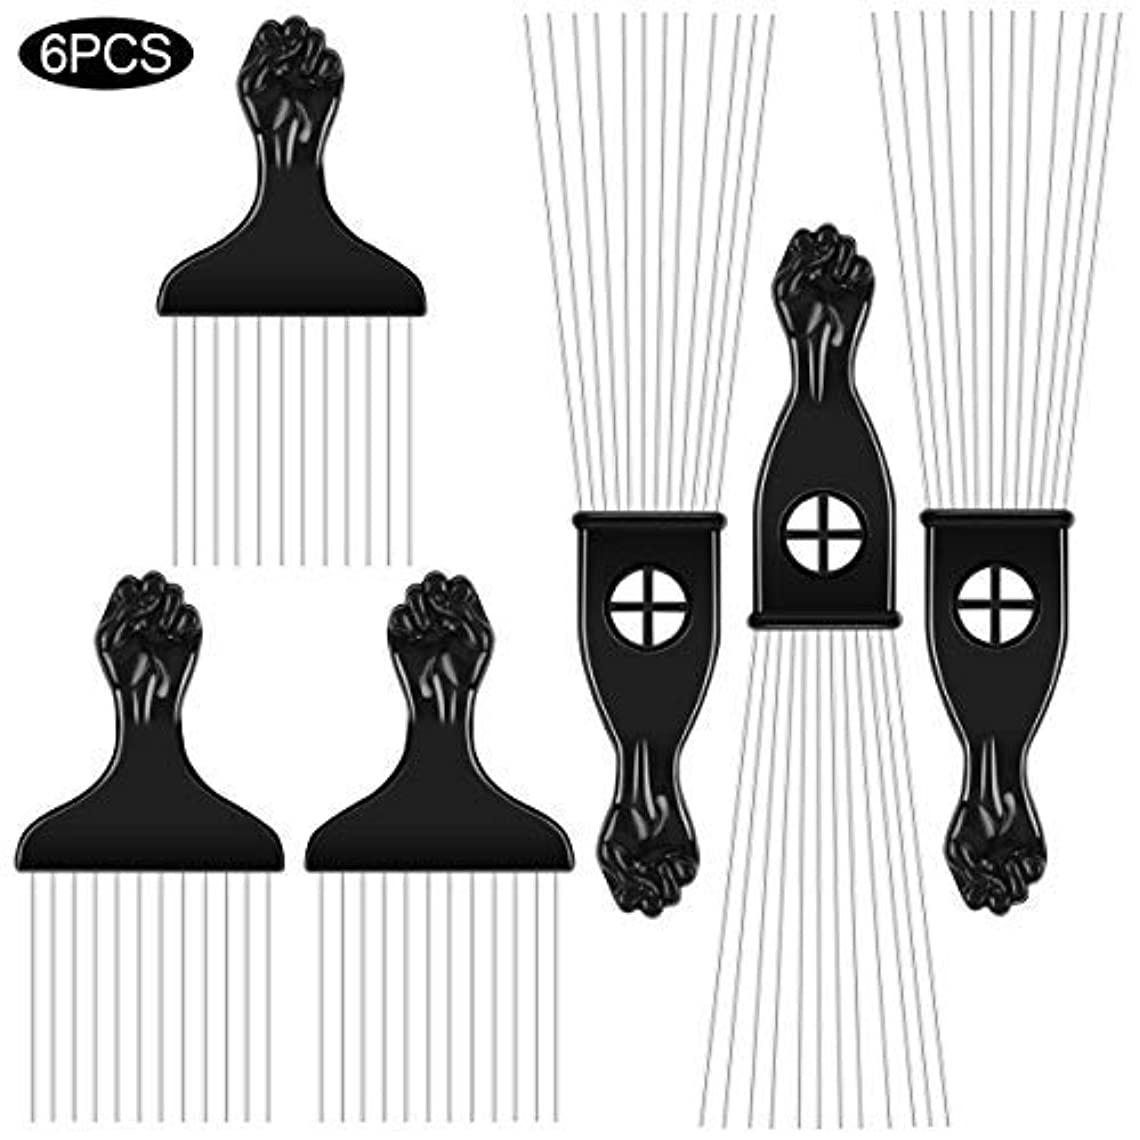 調和のとれたトラフィックレイ6PCS Afro Combs Metal African American black Fist Pick Comb Hairdressing Styling Tool [並行輸入品]